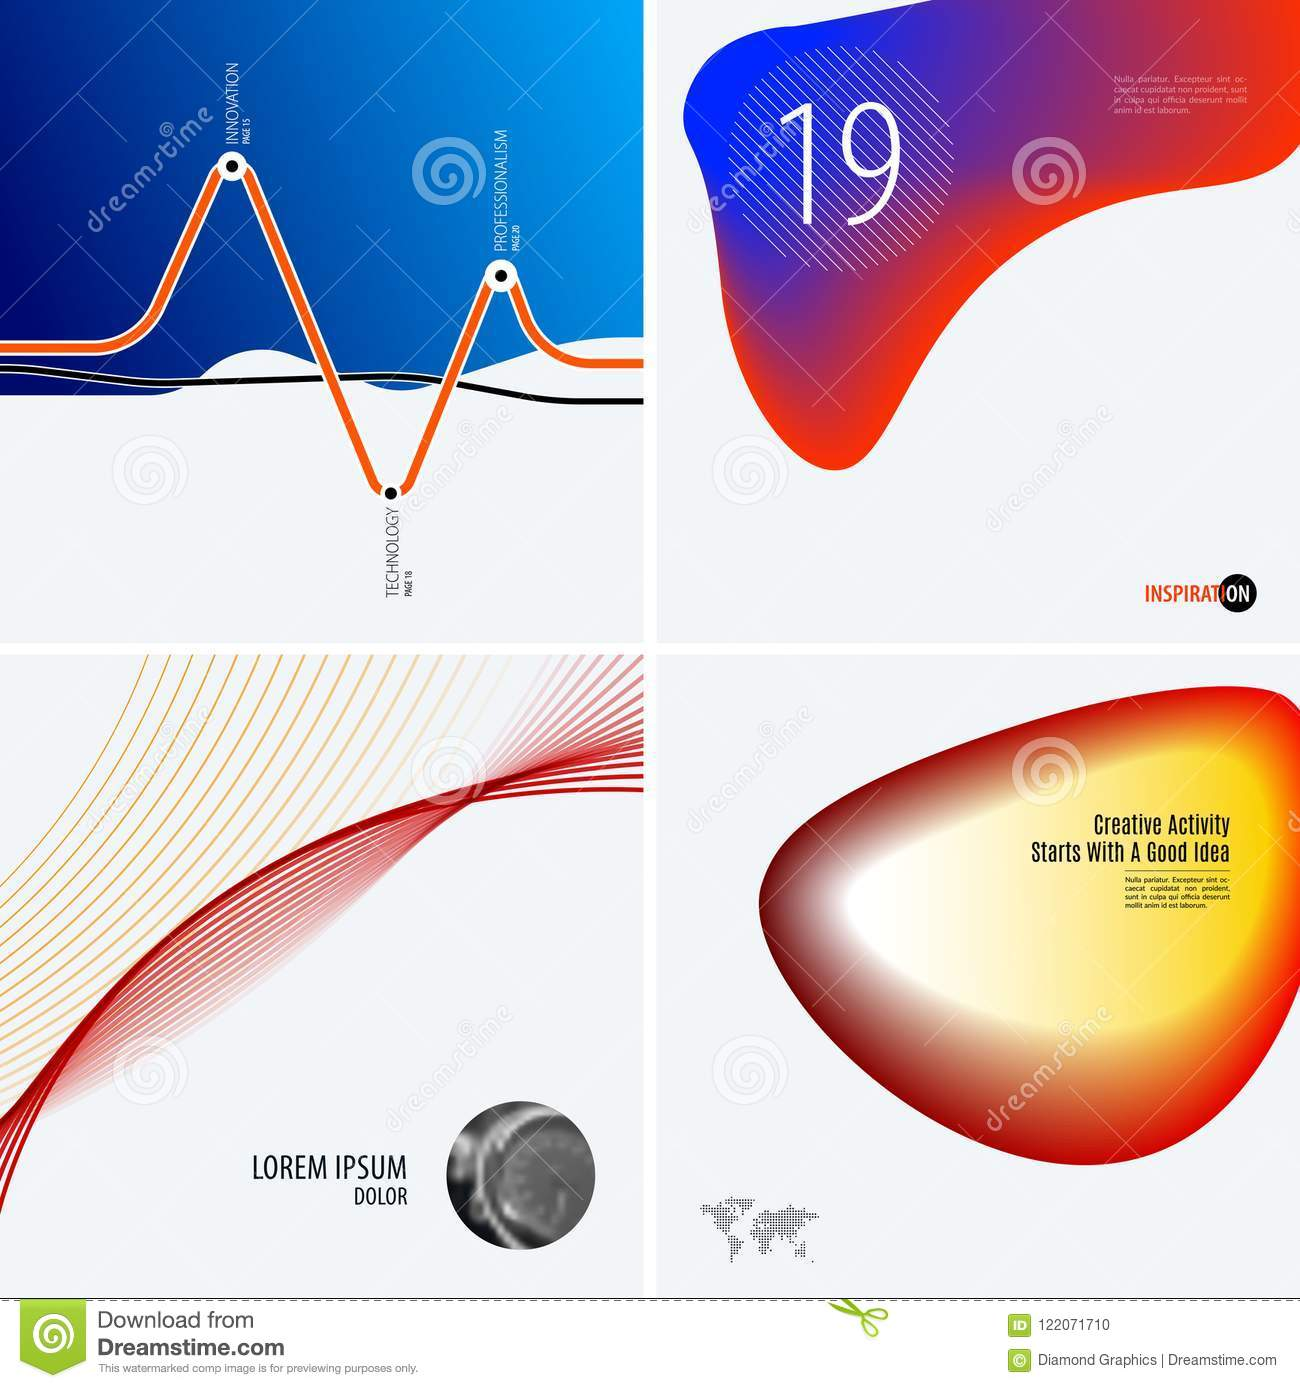 Download Set Of Modern Design Abstract Templates. Creative Business Background With Colourful Waves Lines For Promotion, Banner Stock Vector - Illustration of concept, price: 122071710